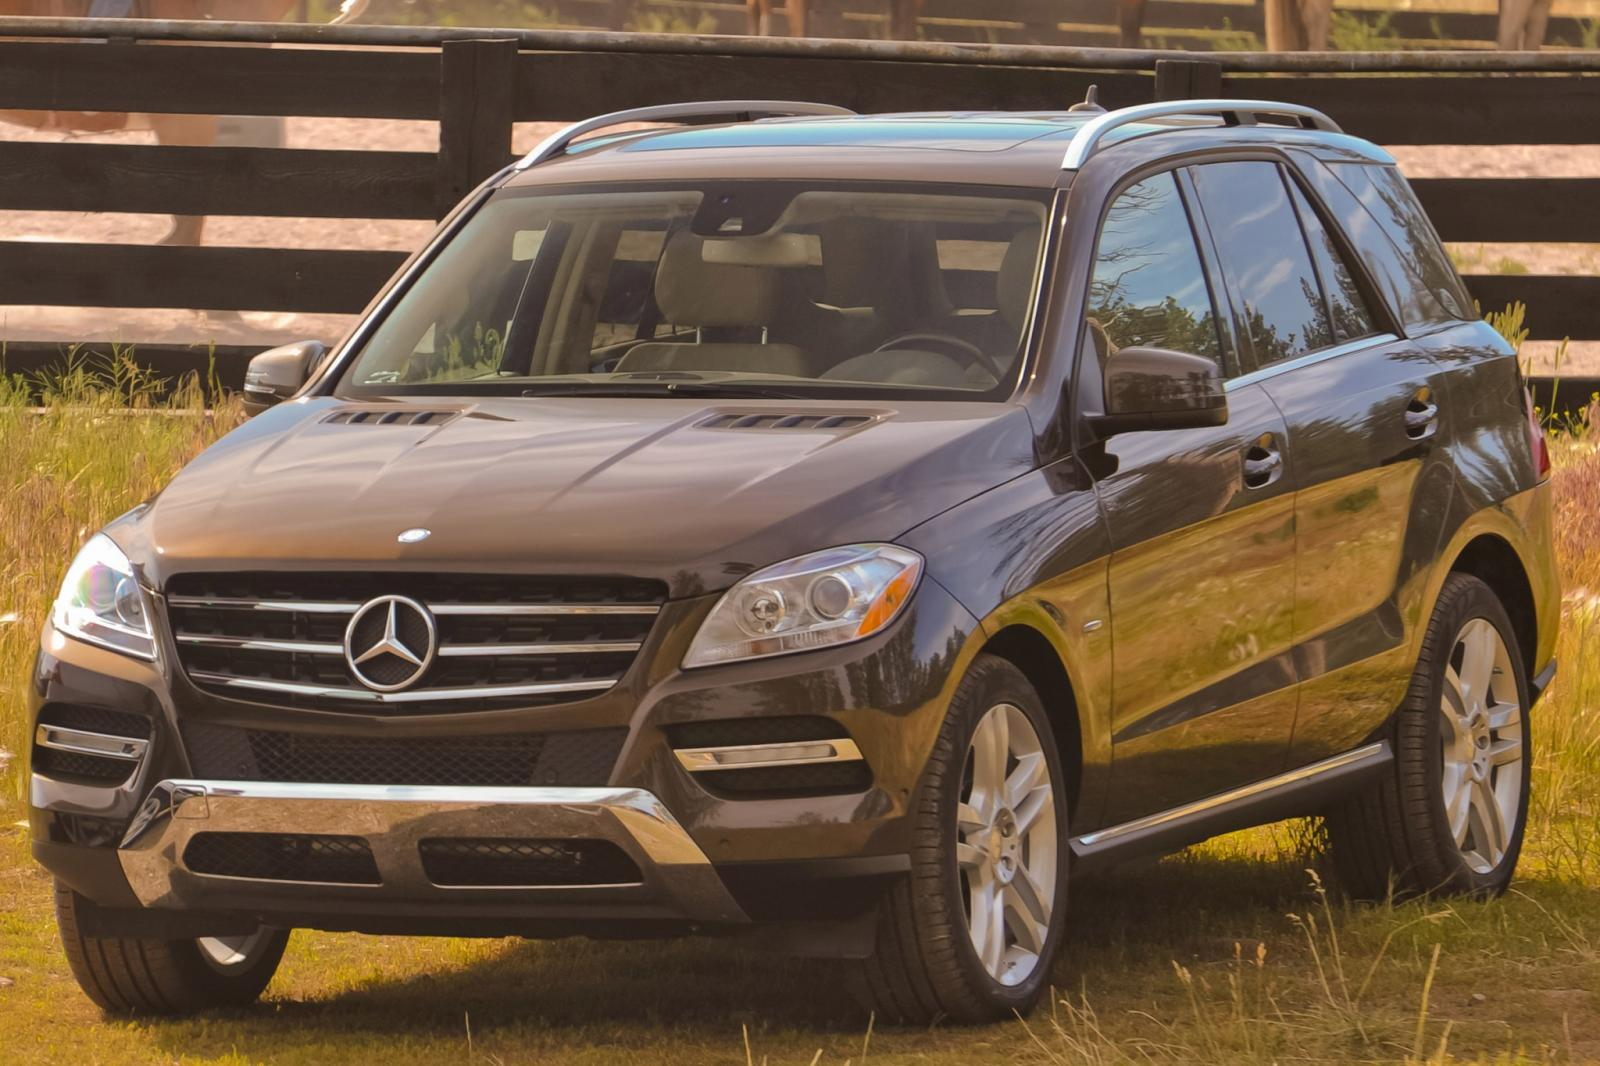 2014 mercedes benz m class information and photos for 2014 mercedes benz m class suv